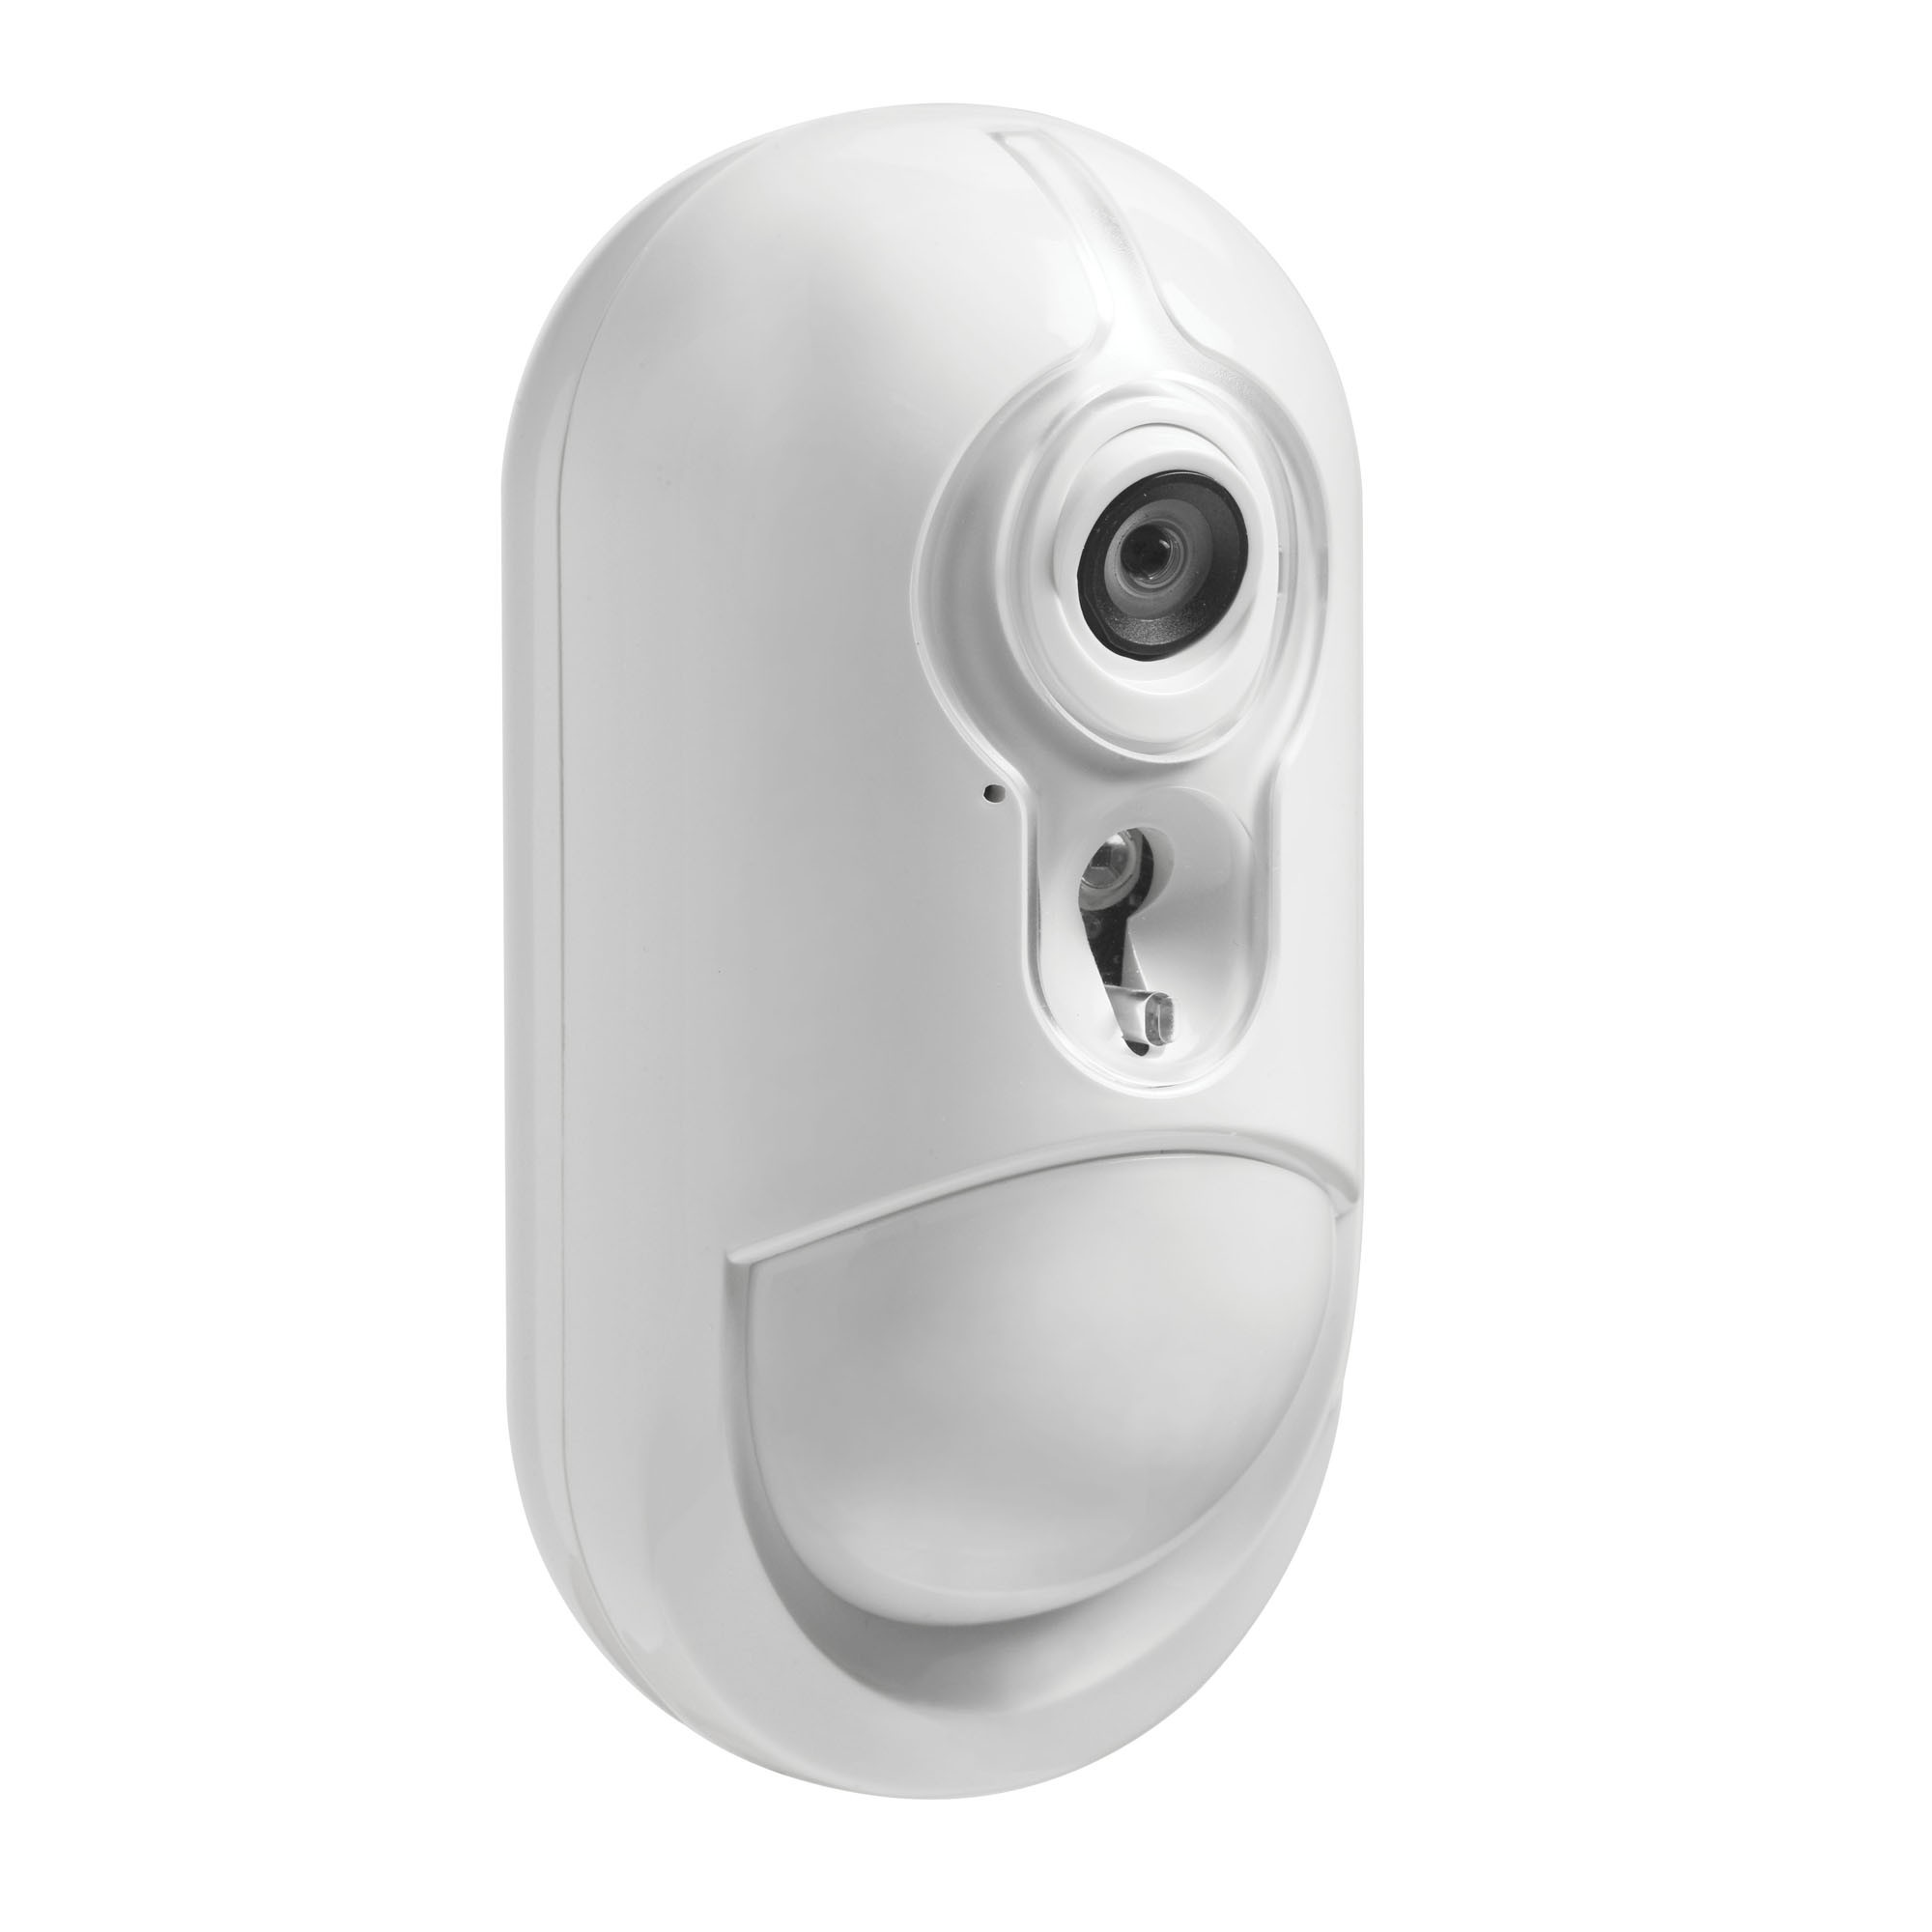 DSC PG8934P PowerG wireless PIR motion sensor with integrated camera